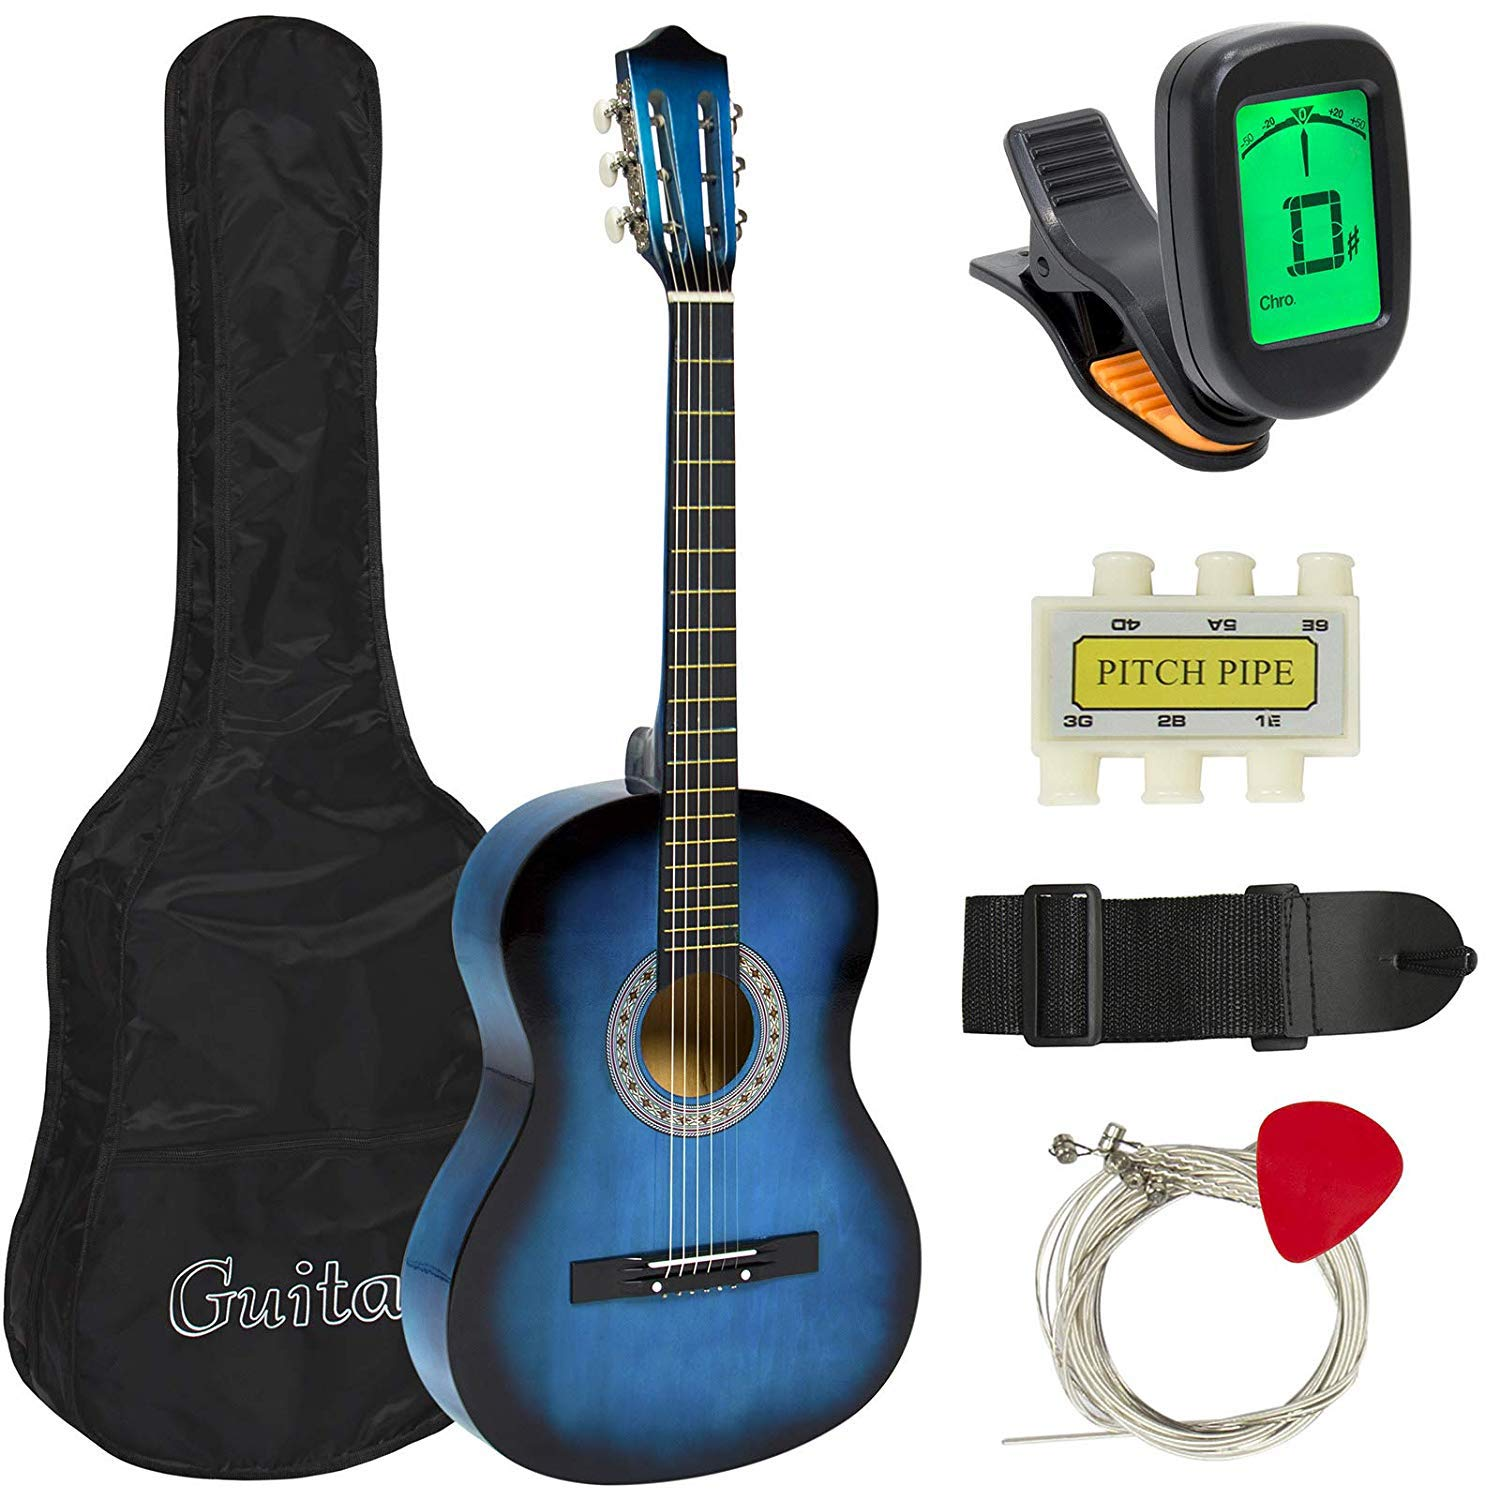 MEDA | Beginners 38 Acostic Guitar with Case, Strap, Digital E-Turner, and Pick (Black) 40189